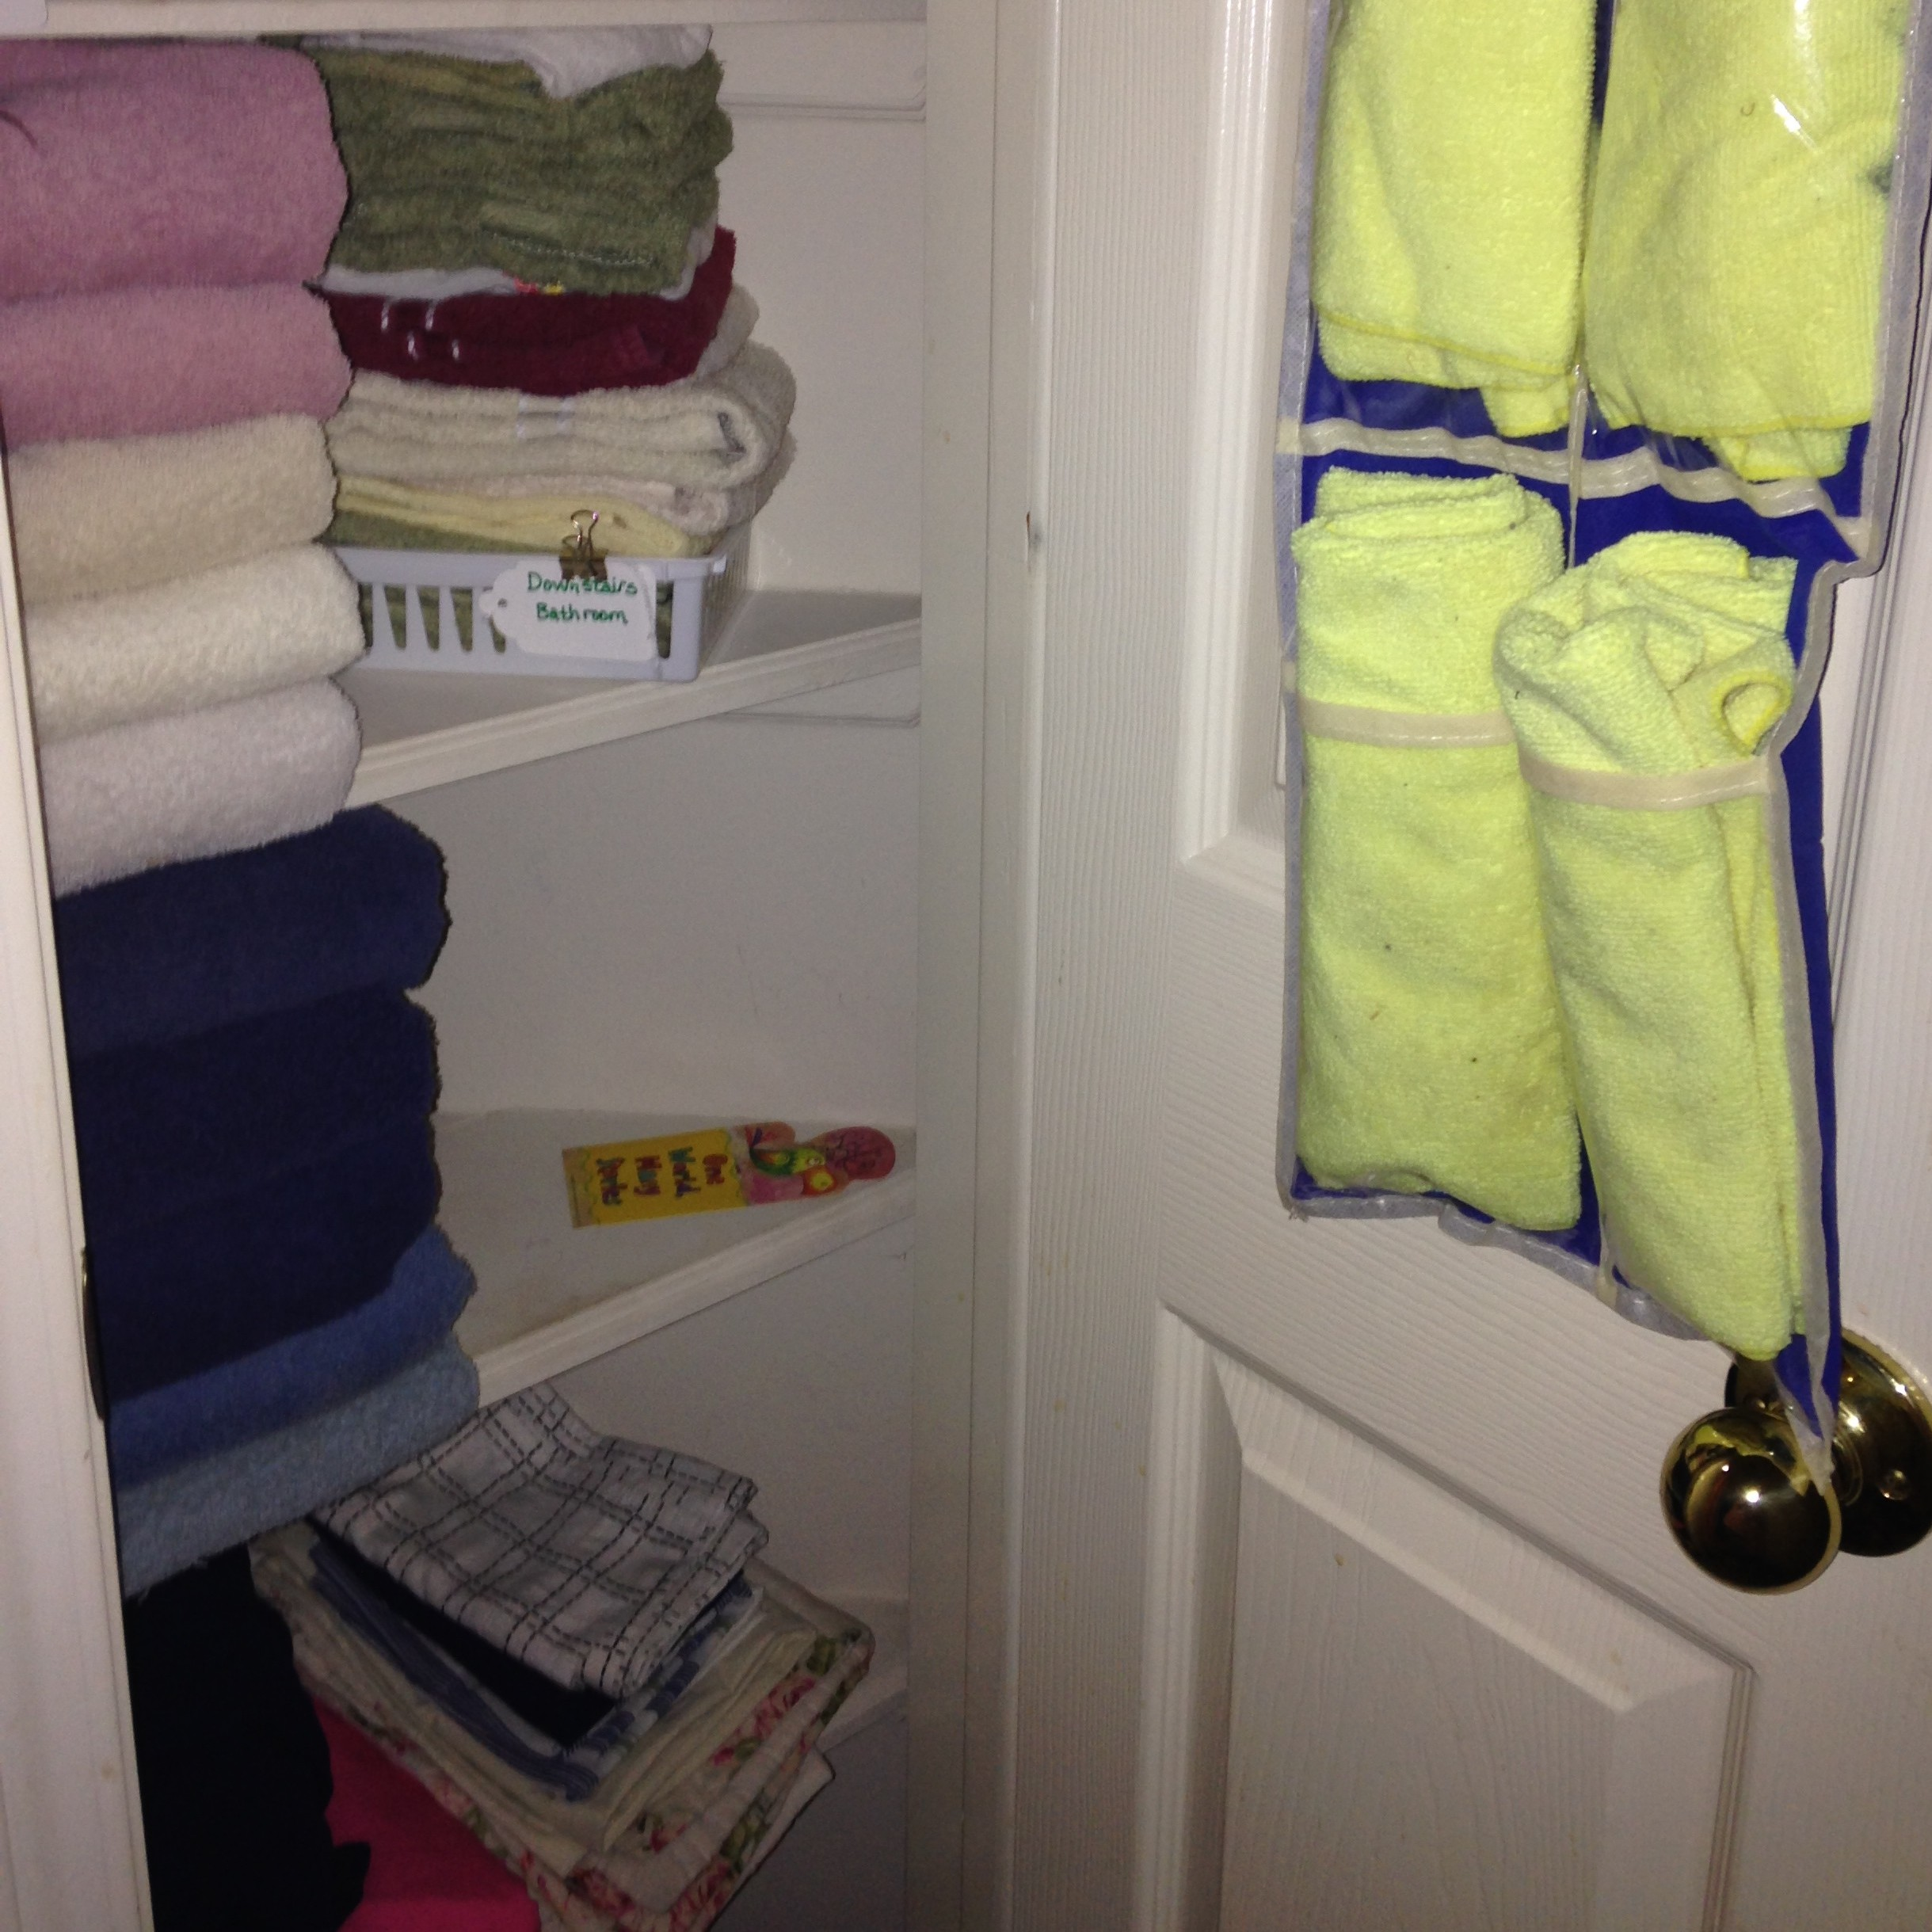 Struggling To Make The Most Of A Small Closet Or Cabinet? Let Power  Productivity Program